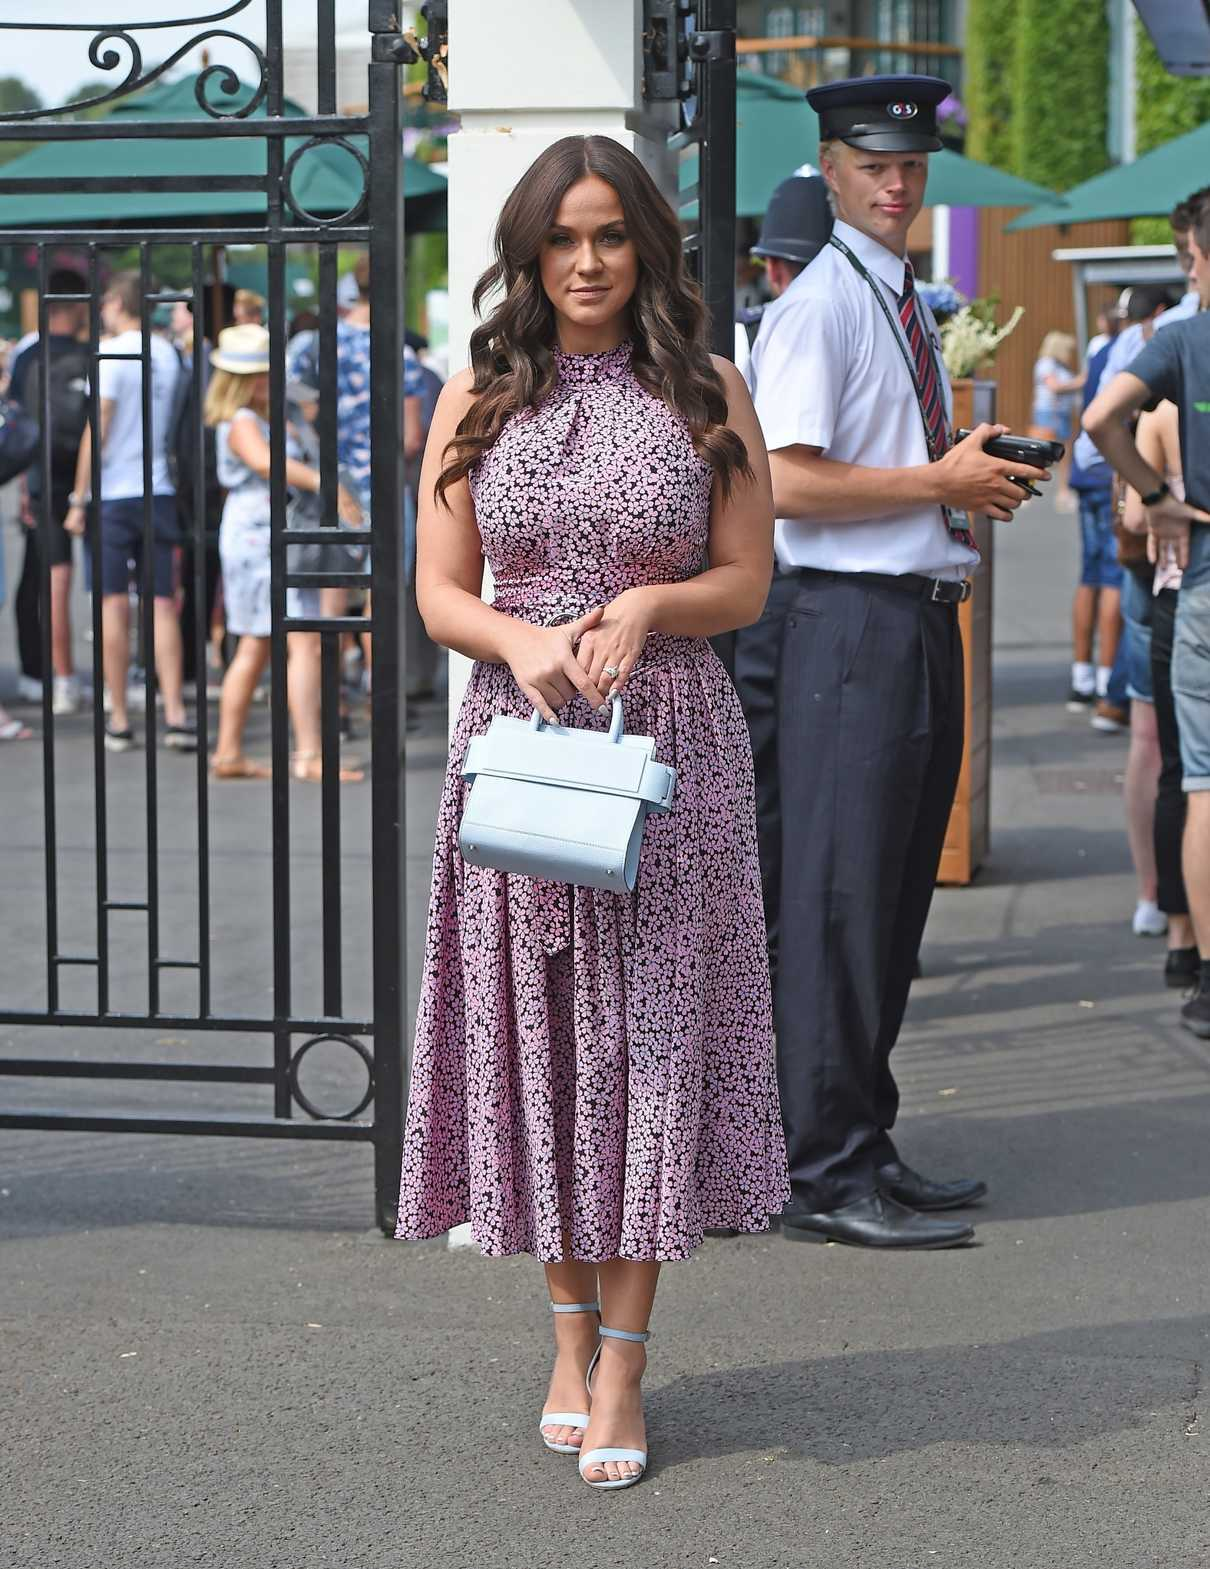 Vicky Pattison Arrives with Her Fiance John Noble at Wimbledon Tennis Tournament in London 07/09/2018-1